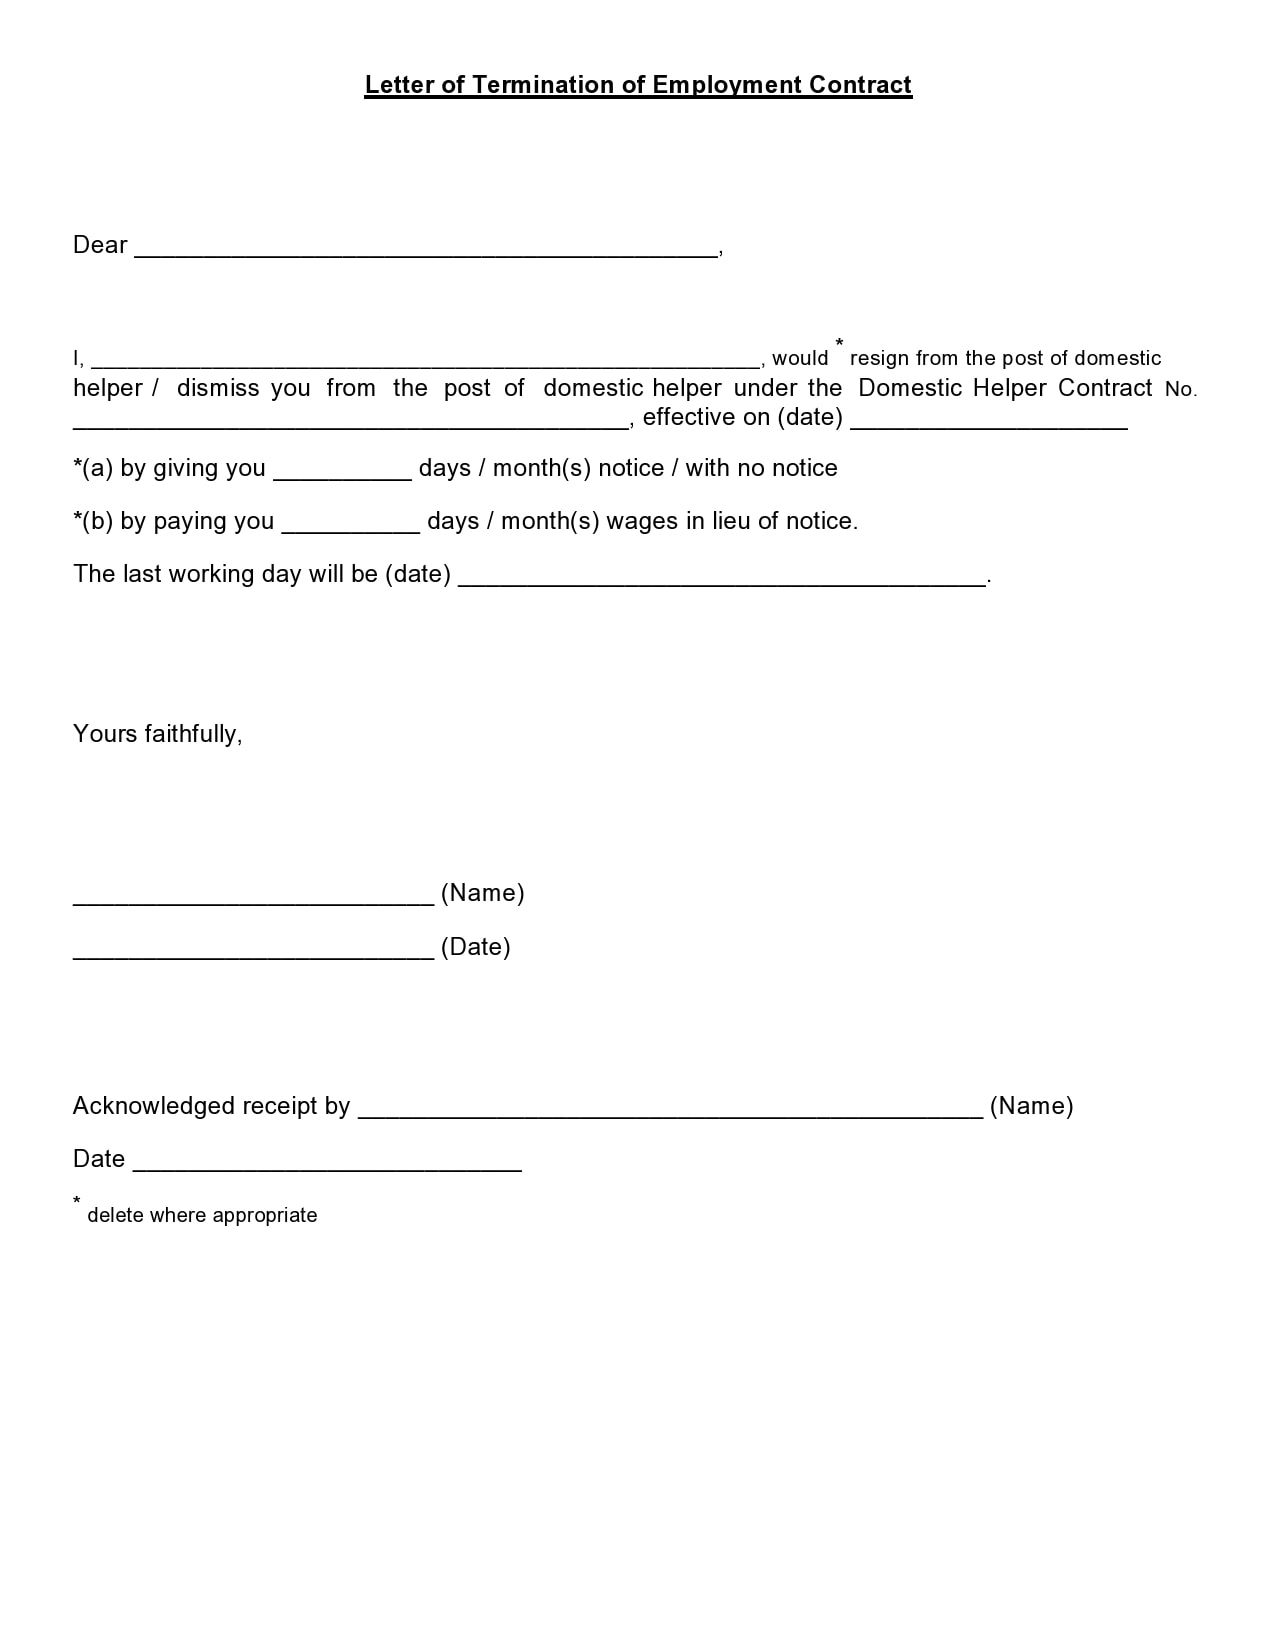 contract termination letter 01